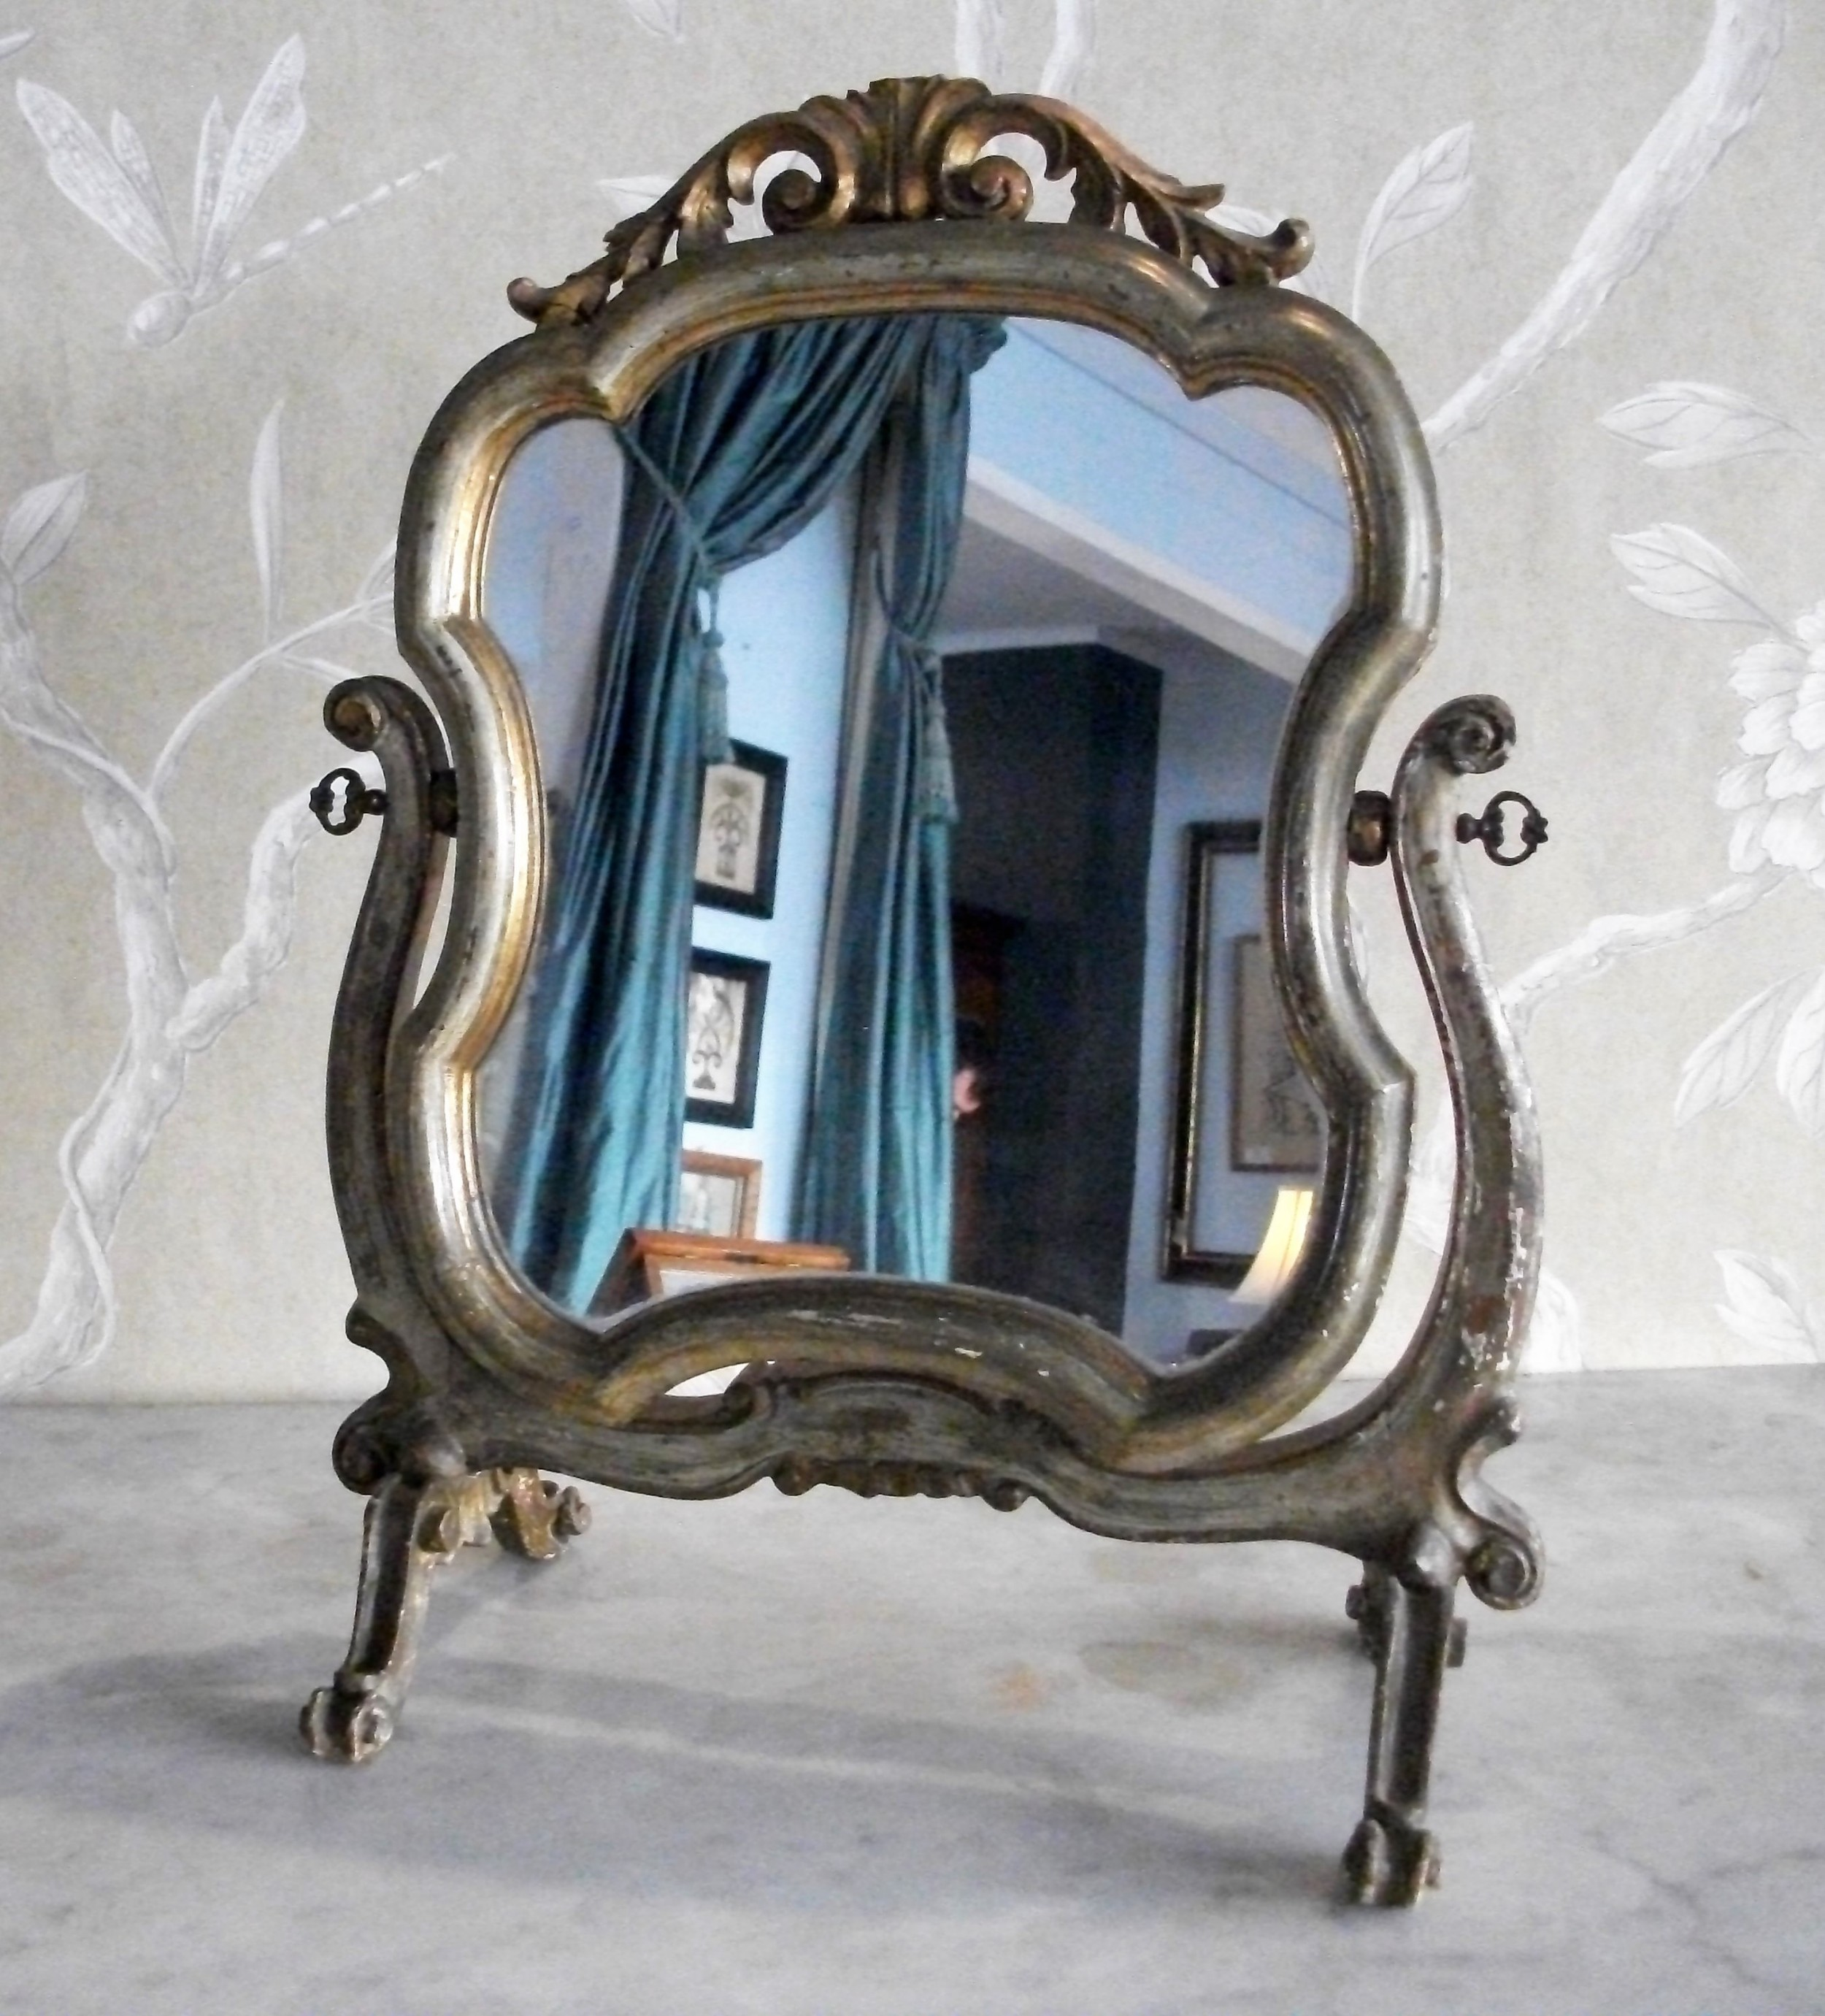 italian venetian swing painted lady's dressing toilet mirror